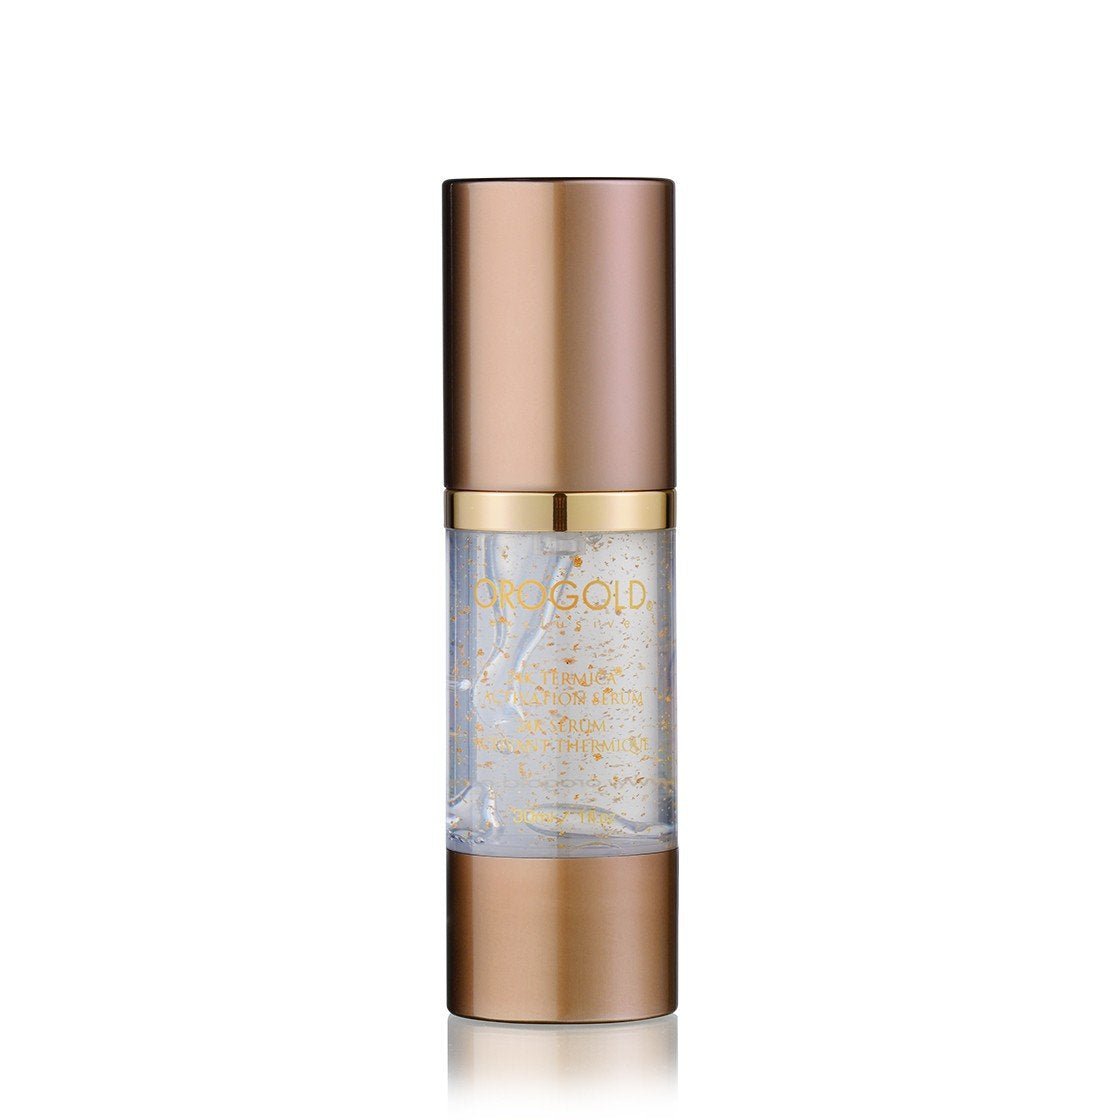 24K Tèrmica® Activation Serum